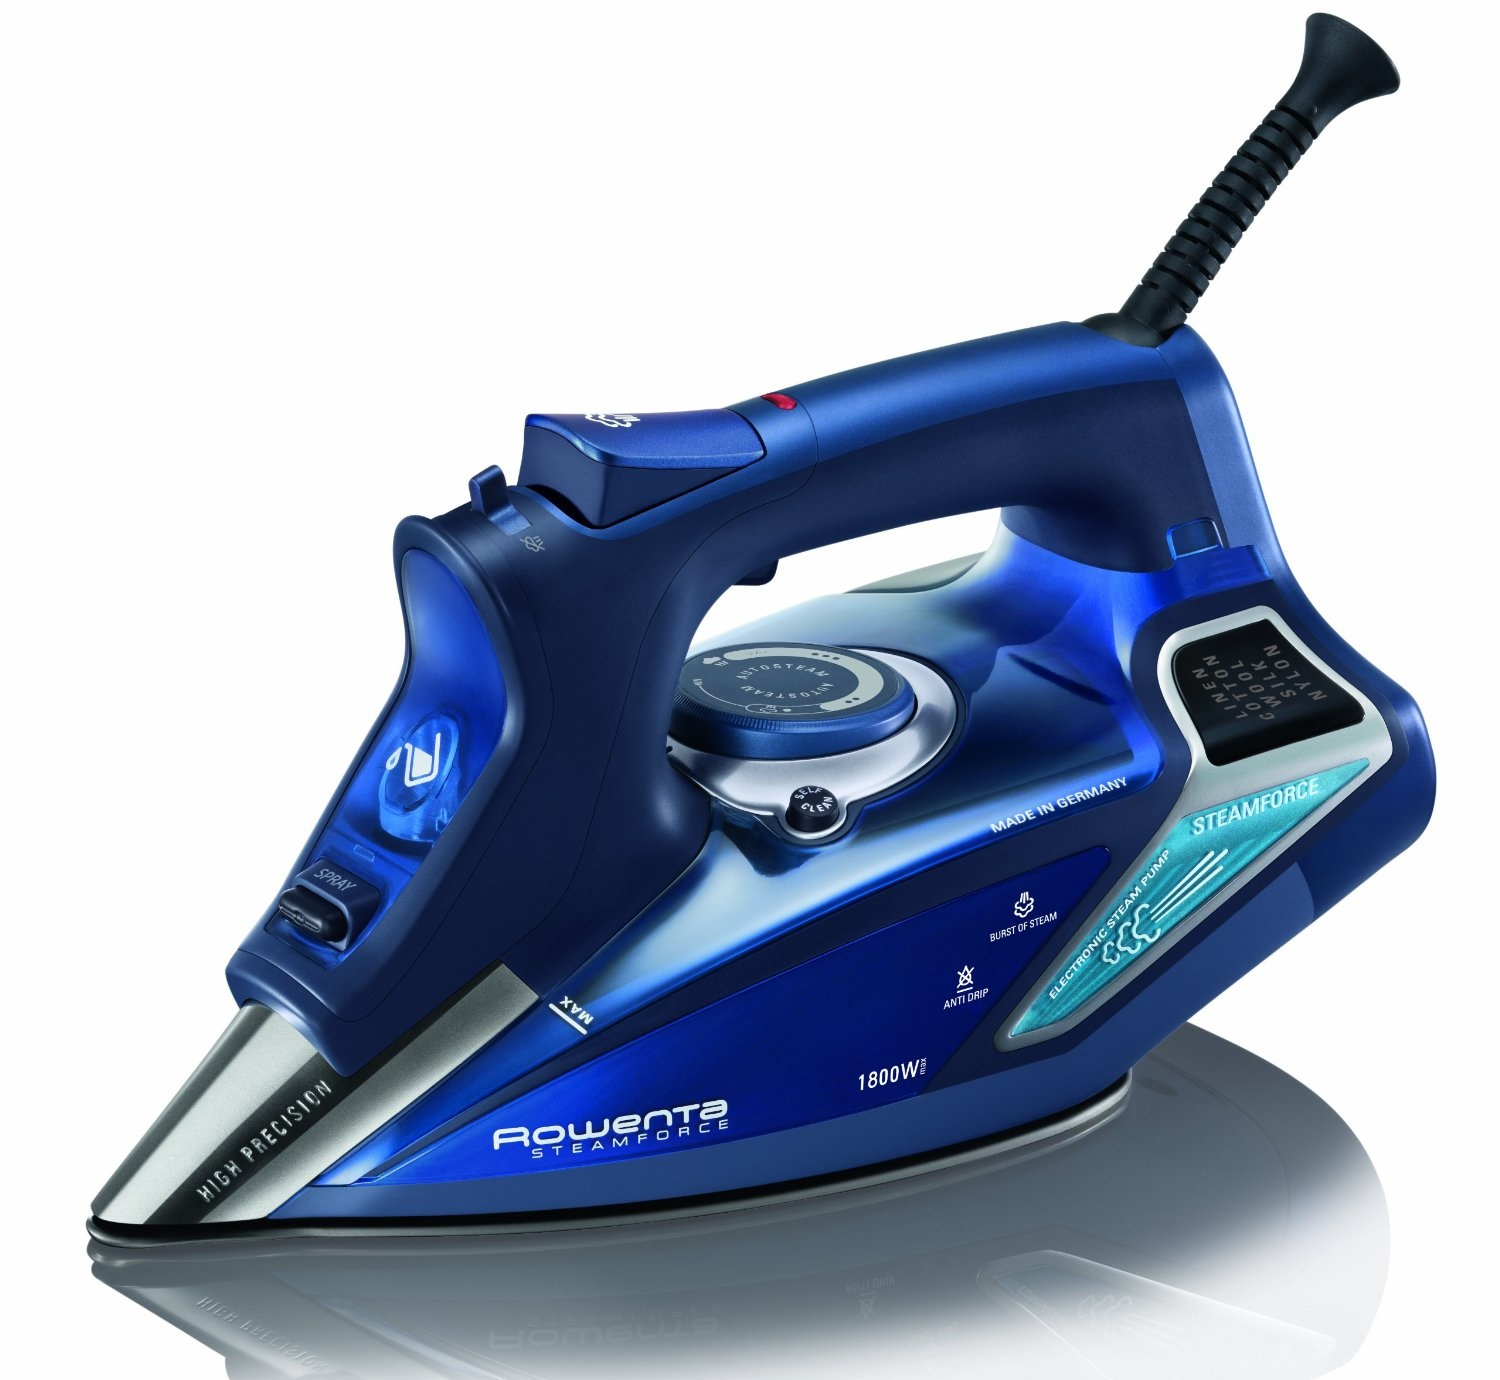 Rowenta DW9280 Review : Buy This Steam Force Iron?